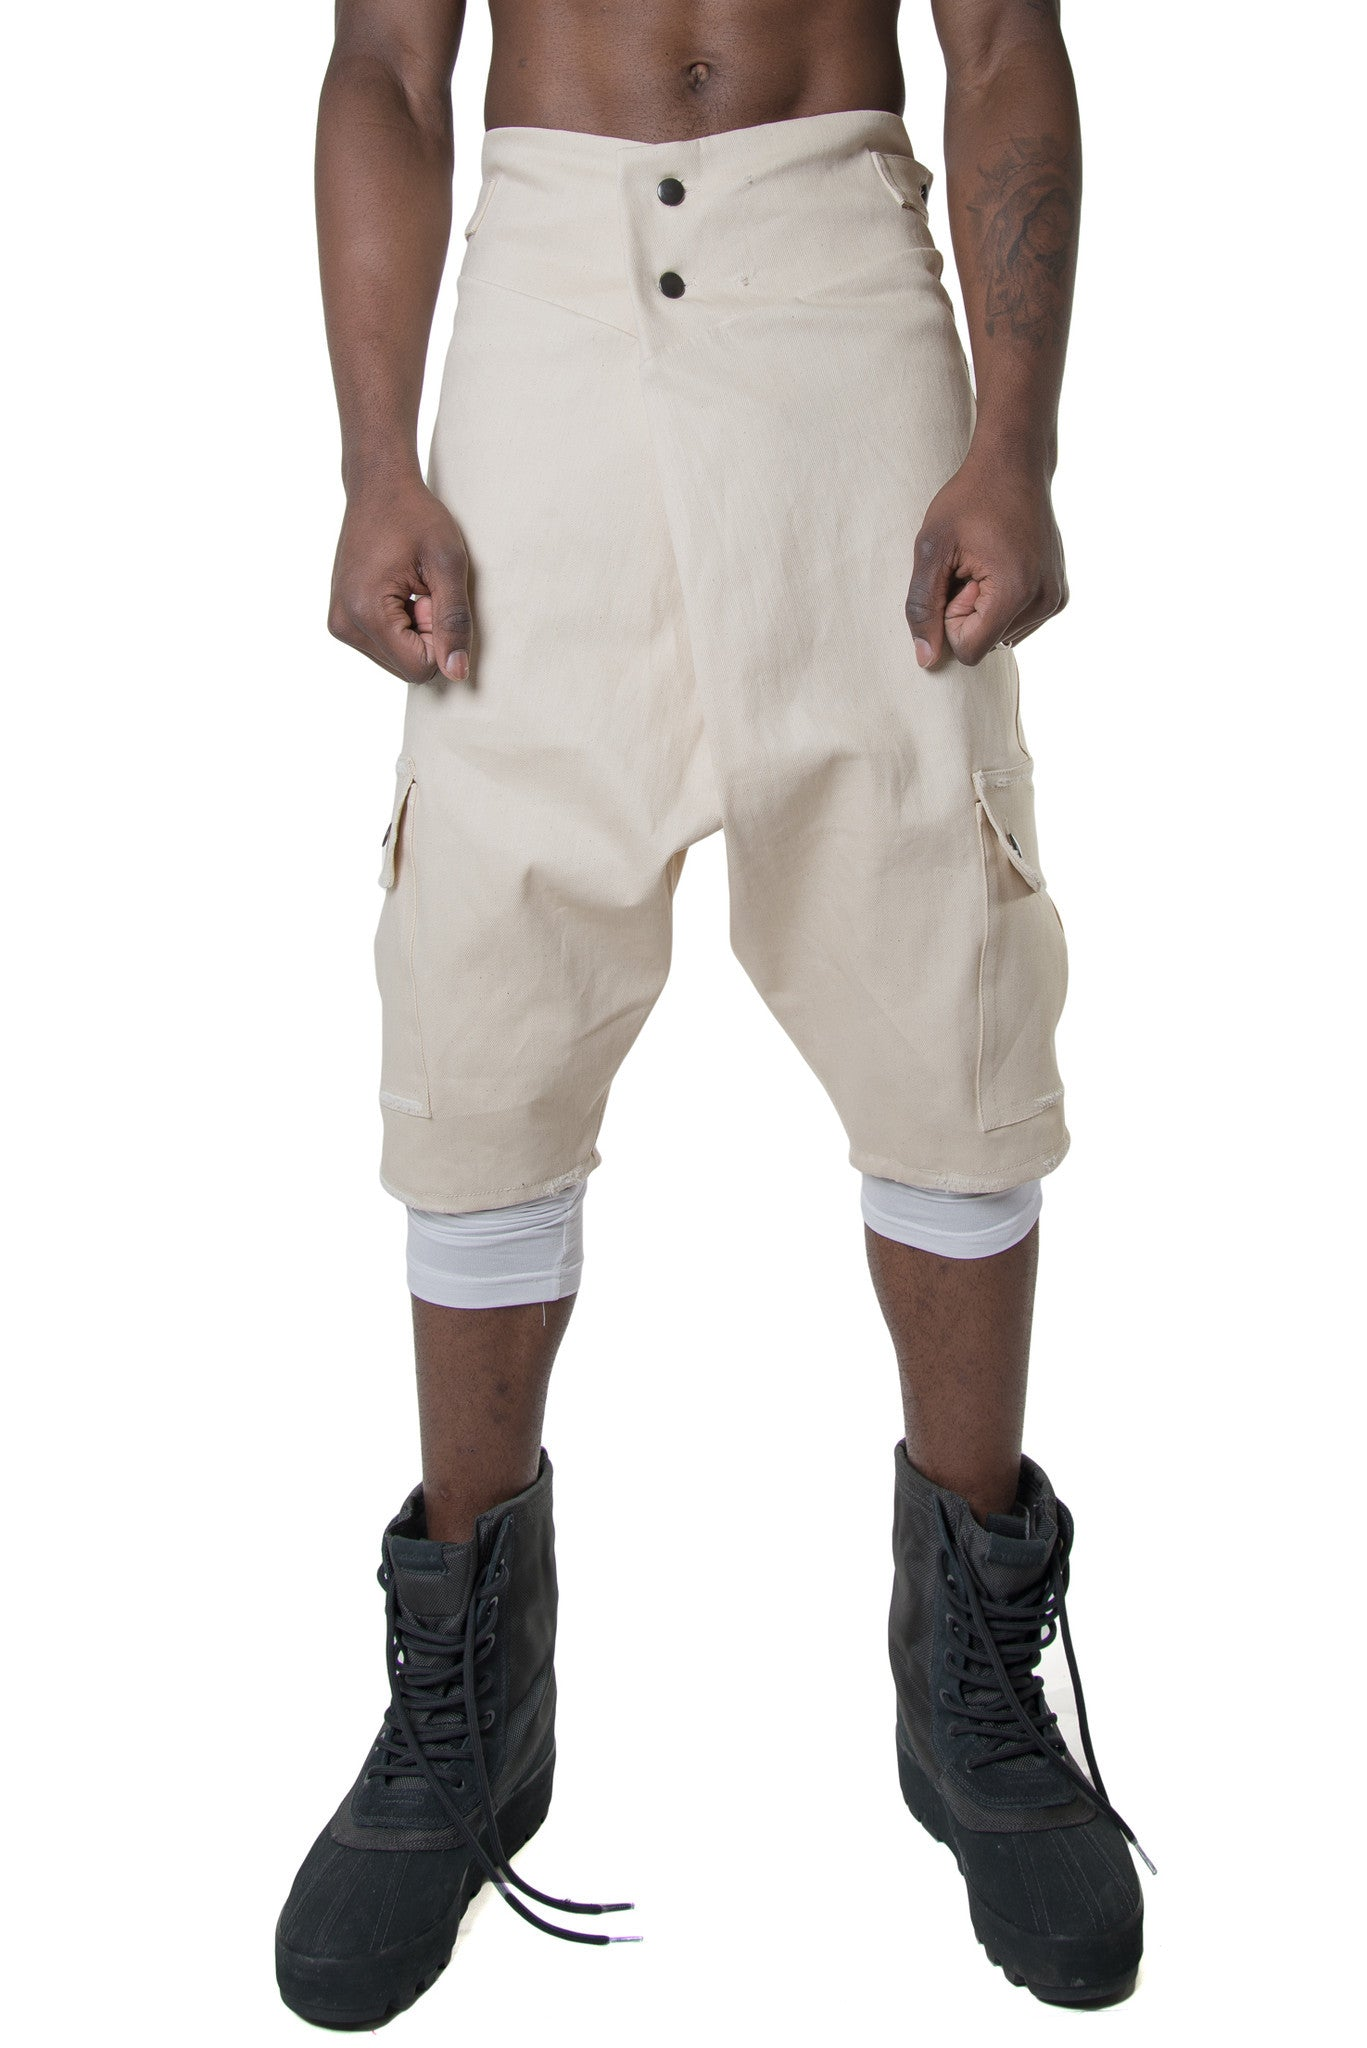 WAVE WRAPPED SHORTS - BEIGE